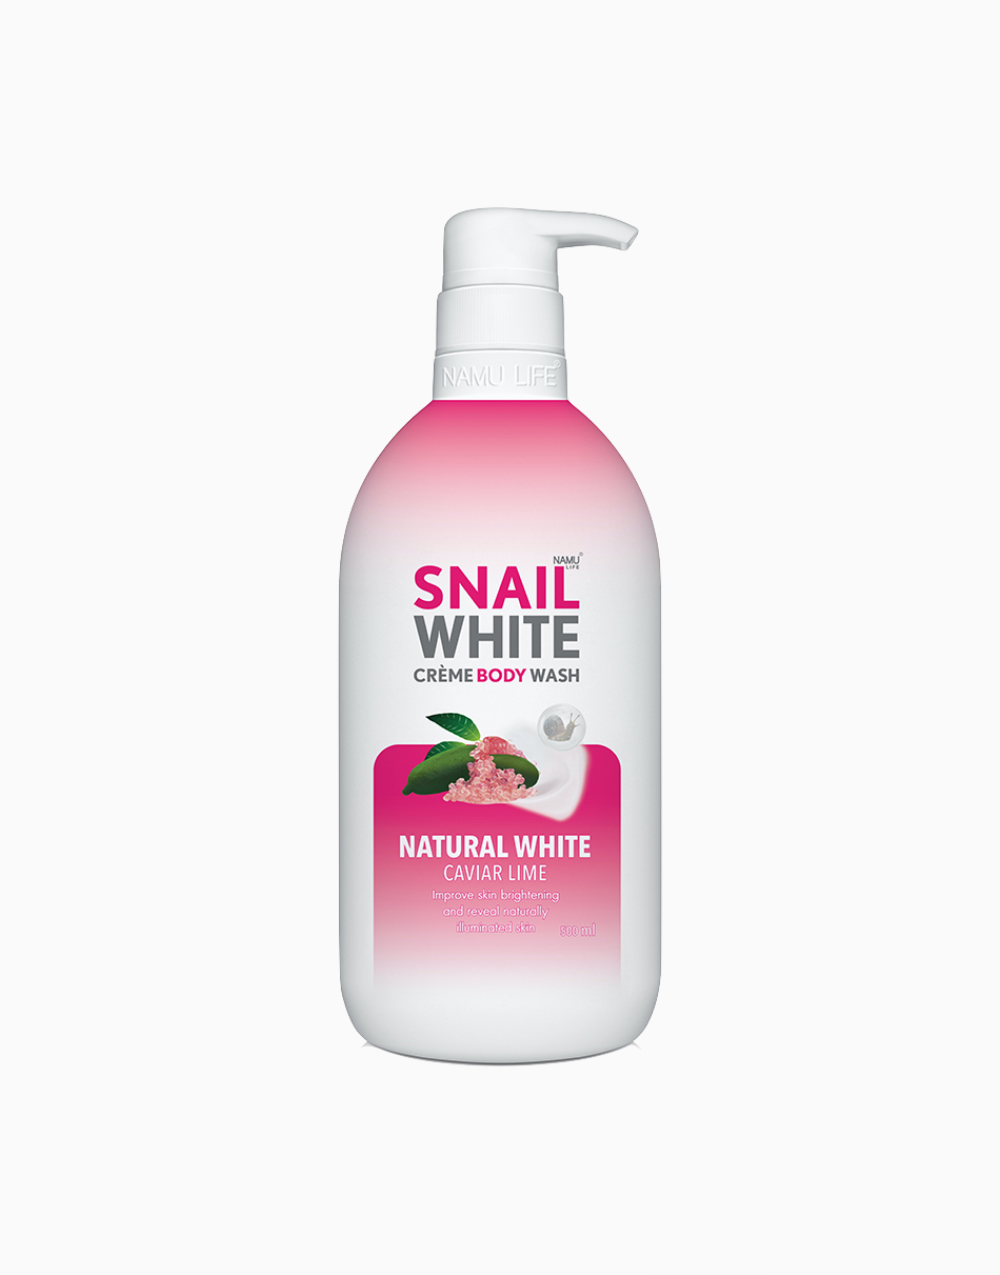 Natural White Body Wash (500ml) by SNAILWHITE